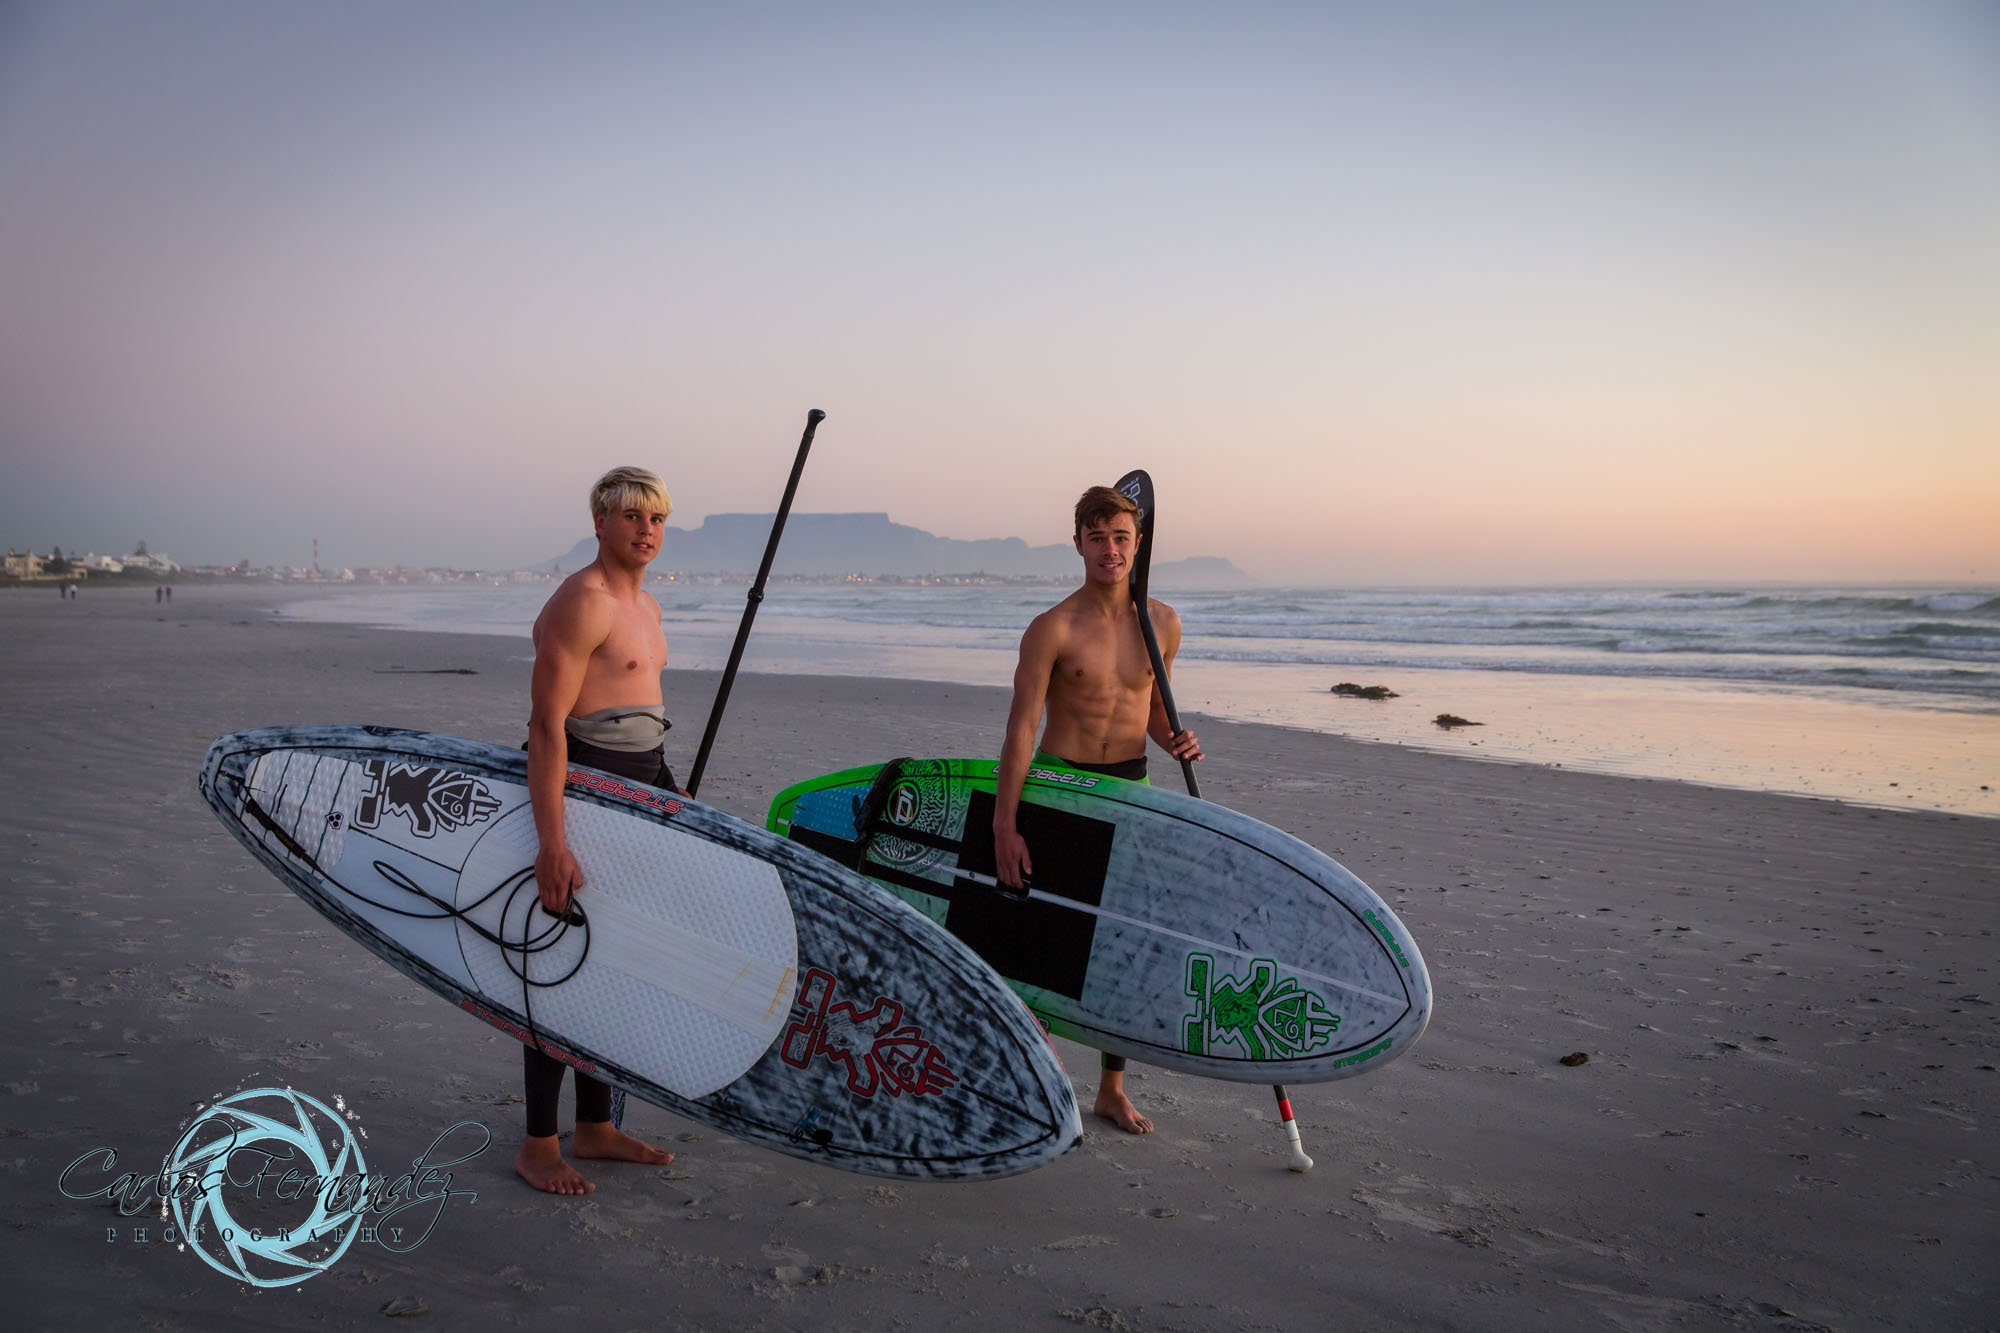 Stand Up Paddleboarders - 228/365